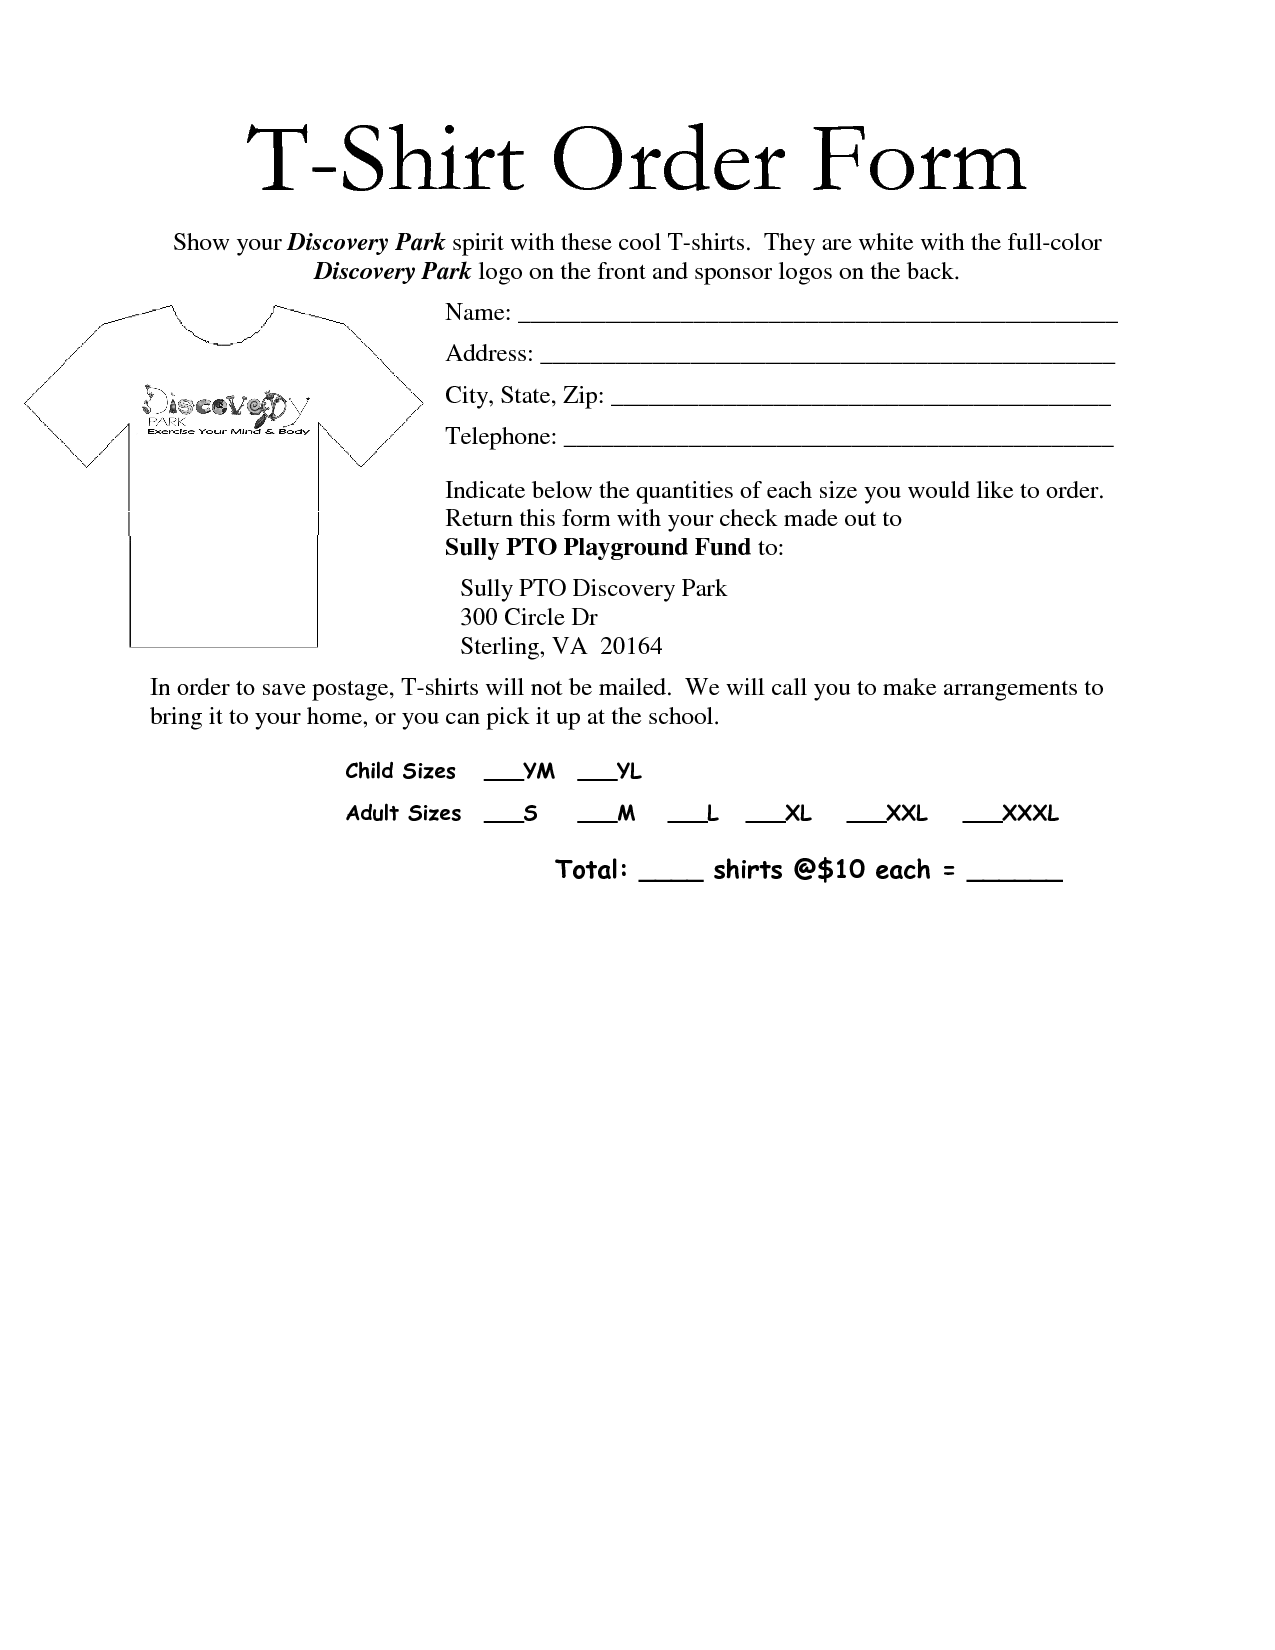 35 awesome t shirt order form template free images projects to try 35 awesome t shirt order form template free images alramifo Image collections